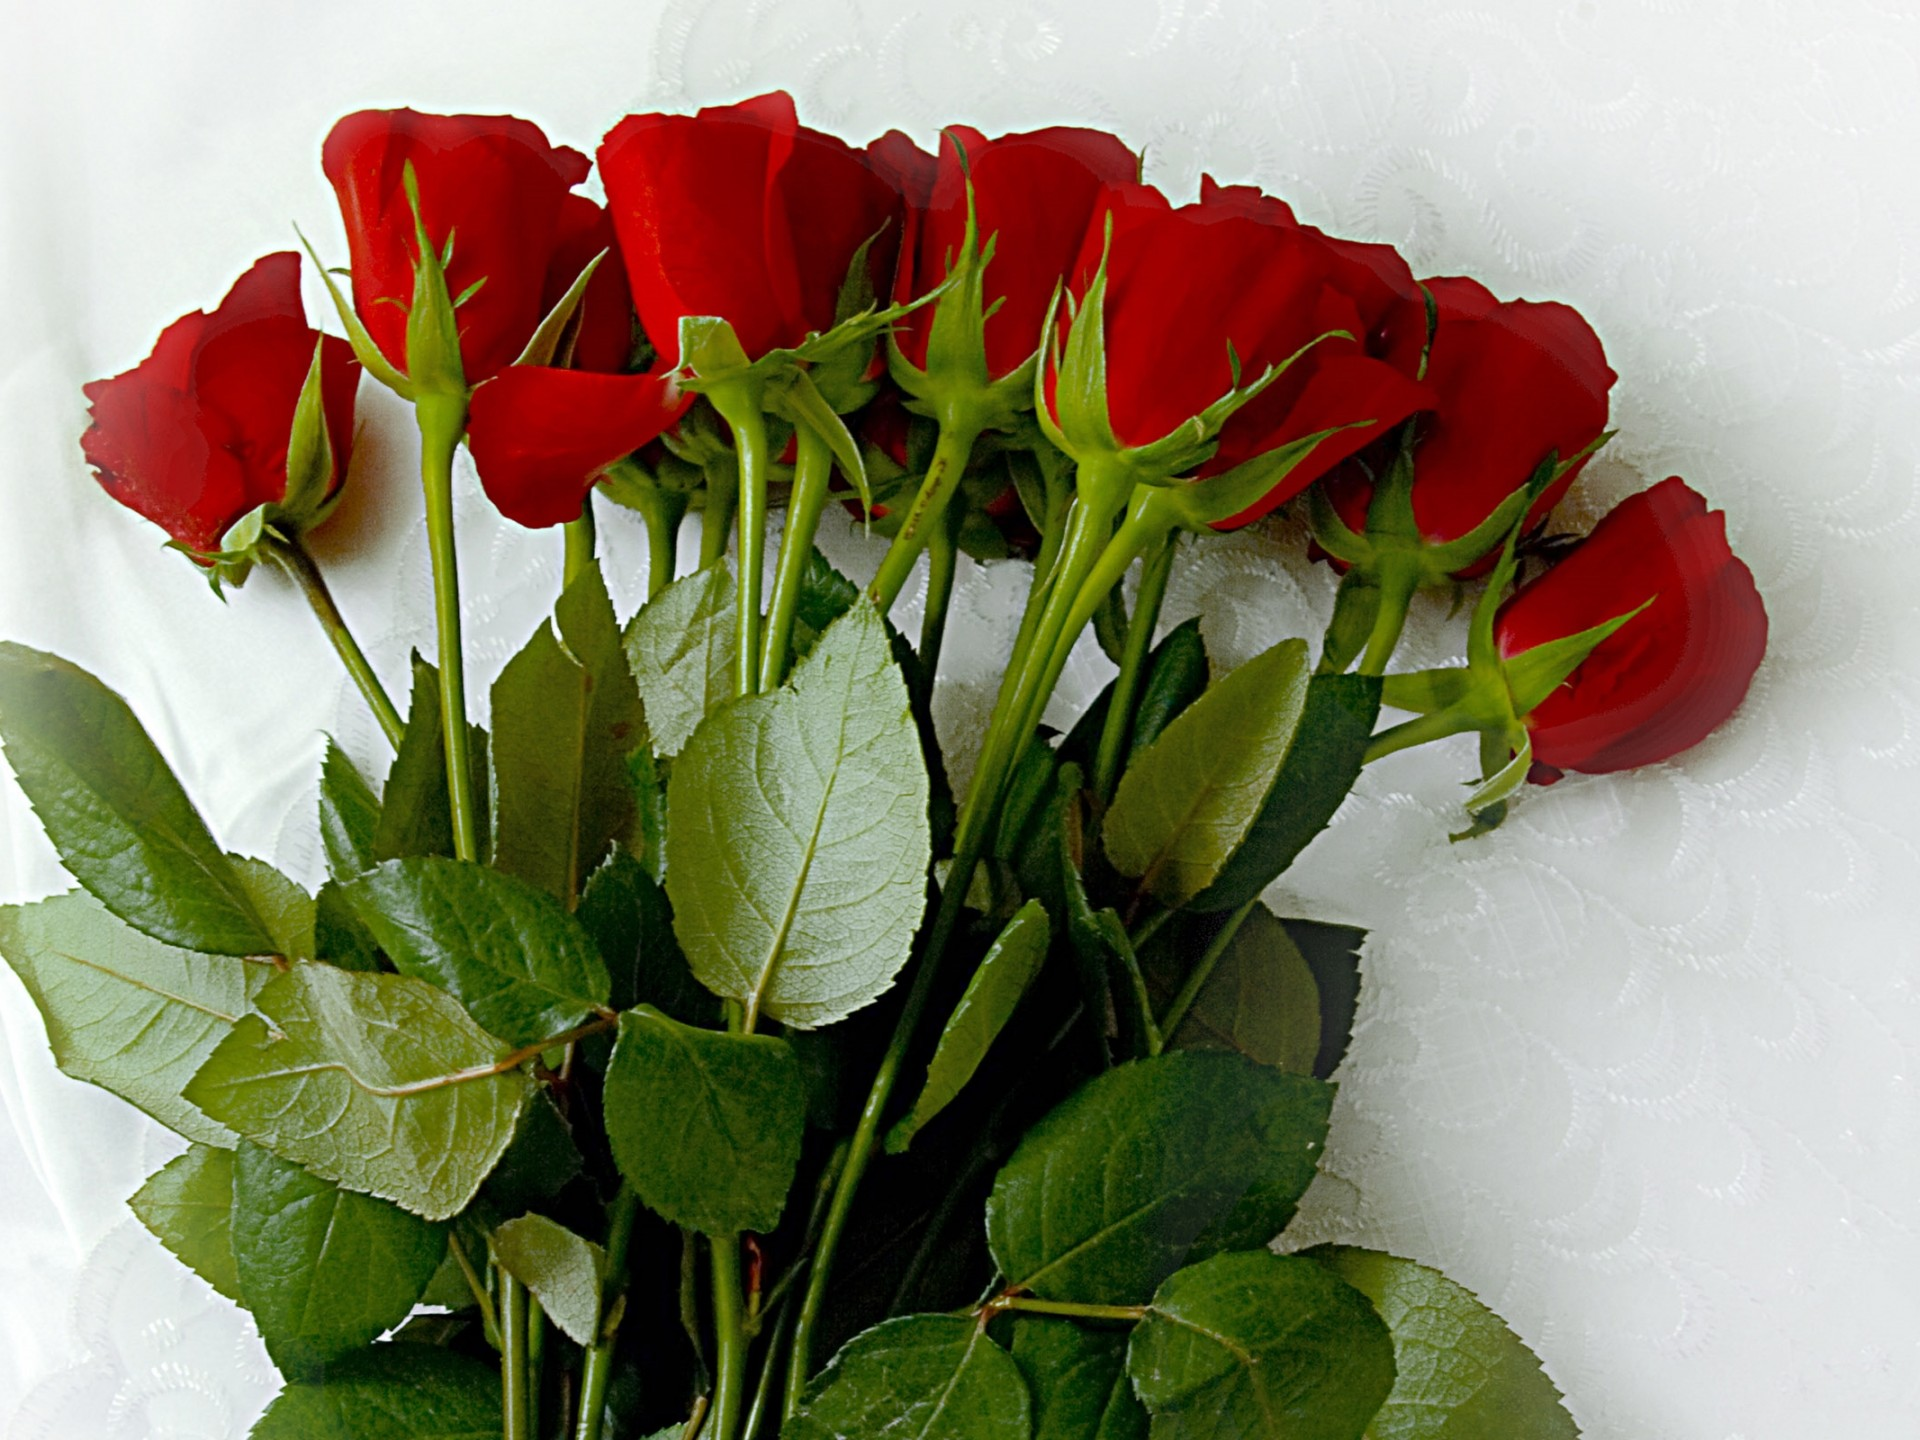 Very Beautiful Good Morning Images Hd With Rose - HD Wallpaper